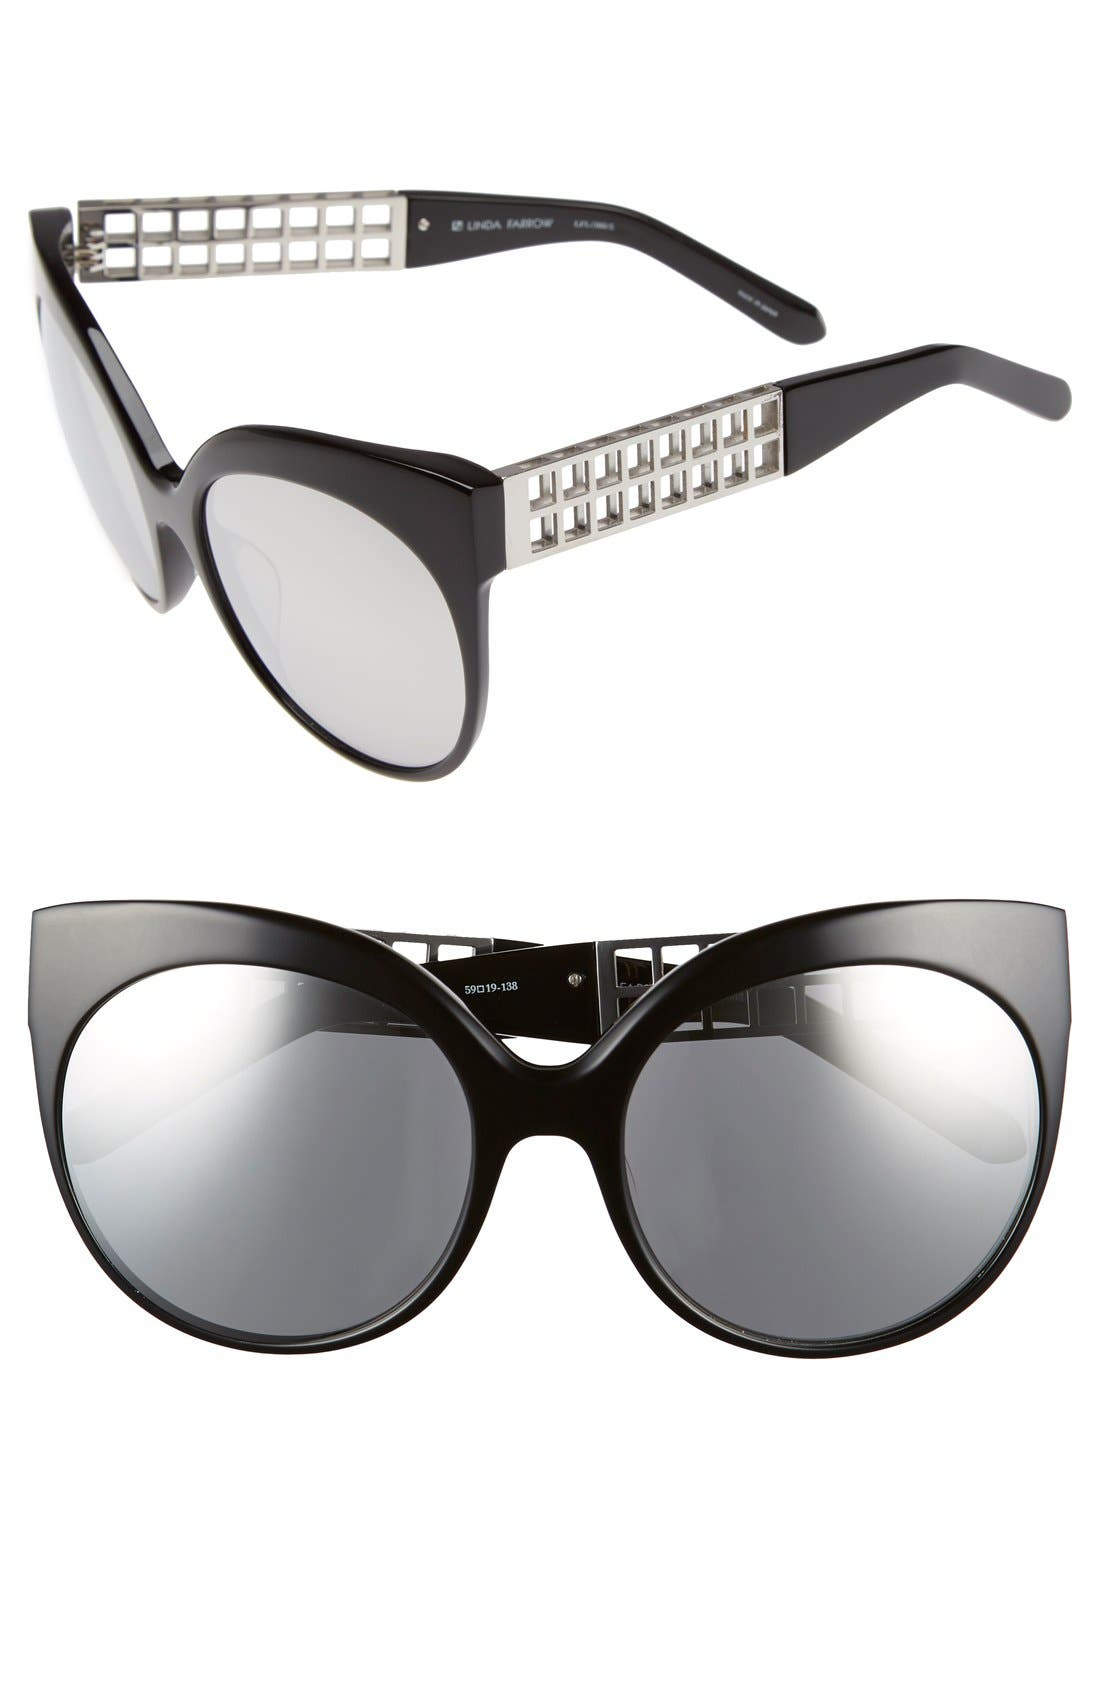 Alternate Image 1 Selected - Linda Farrow 59mm Cat Eye 18 Karat White Gold Trim Sunglasses